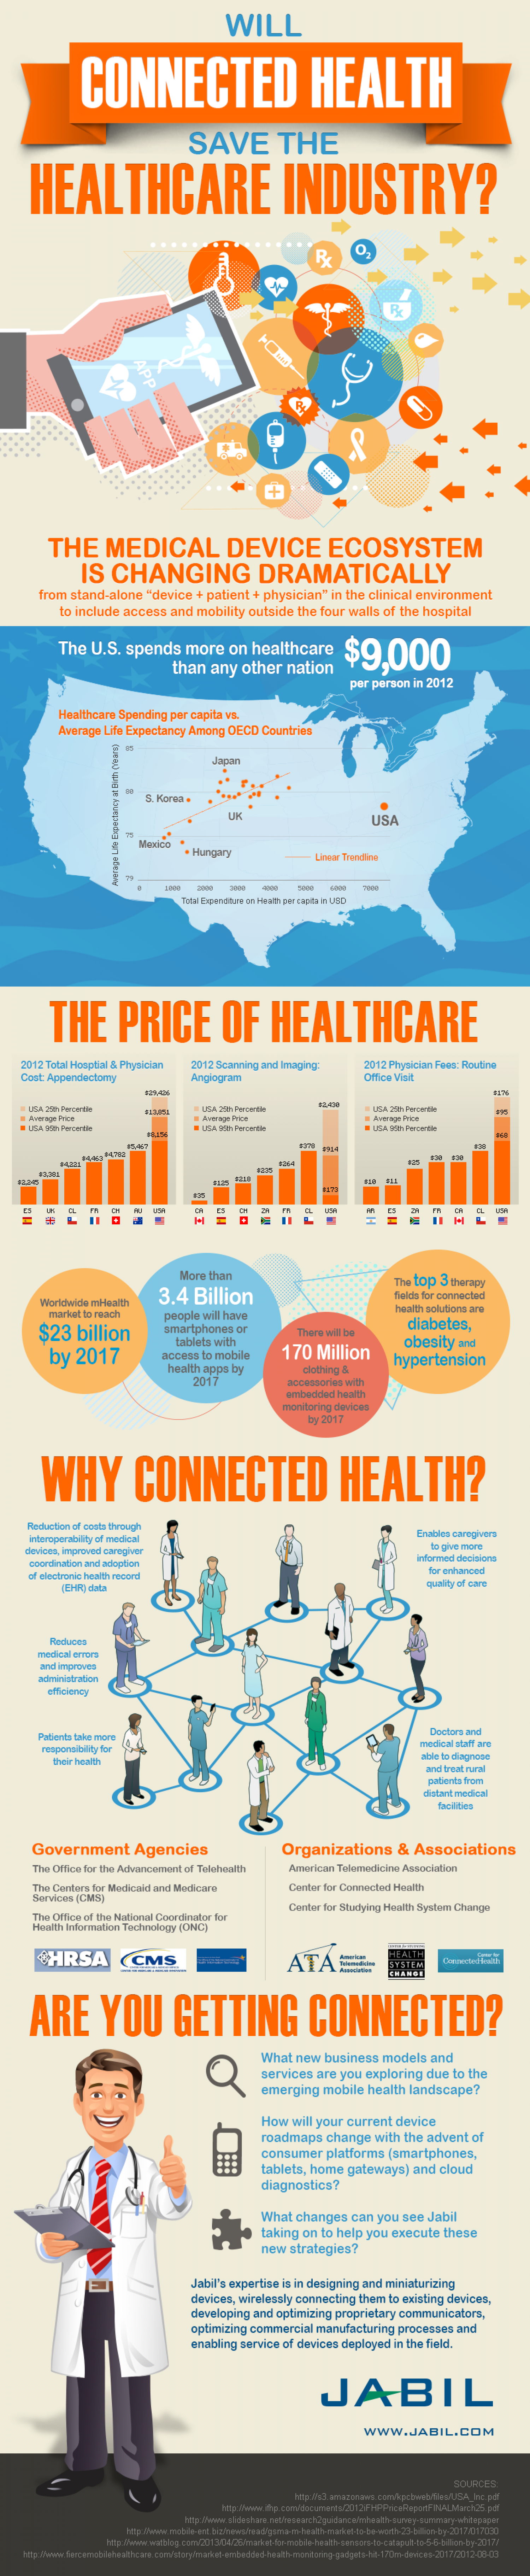 Will Connected Health Save the Healthcare Industry? Infographic